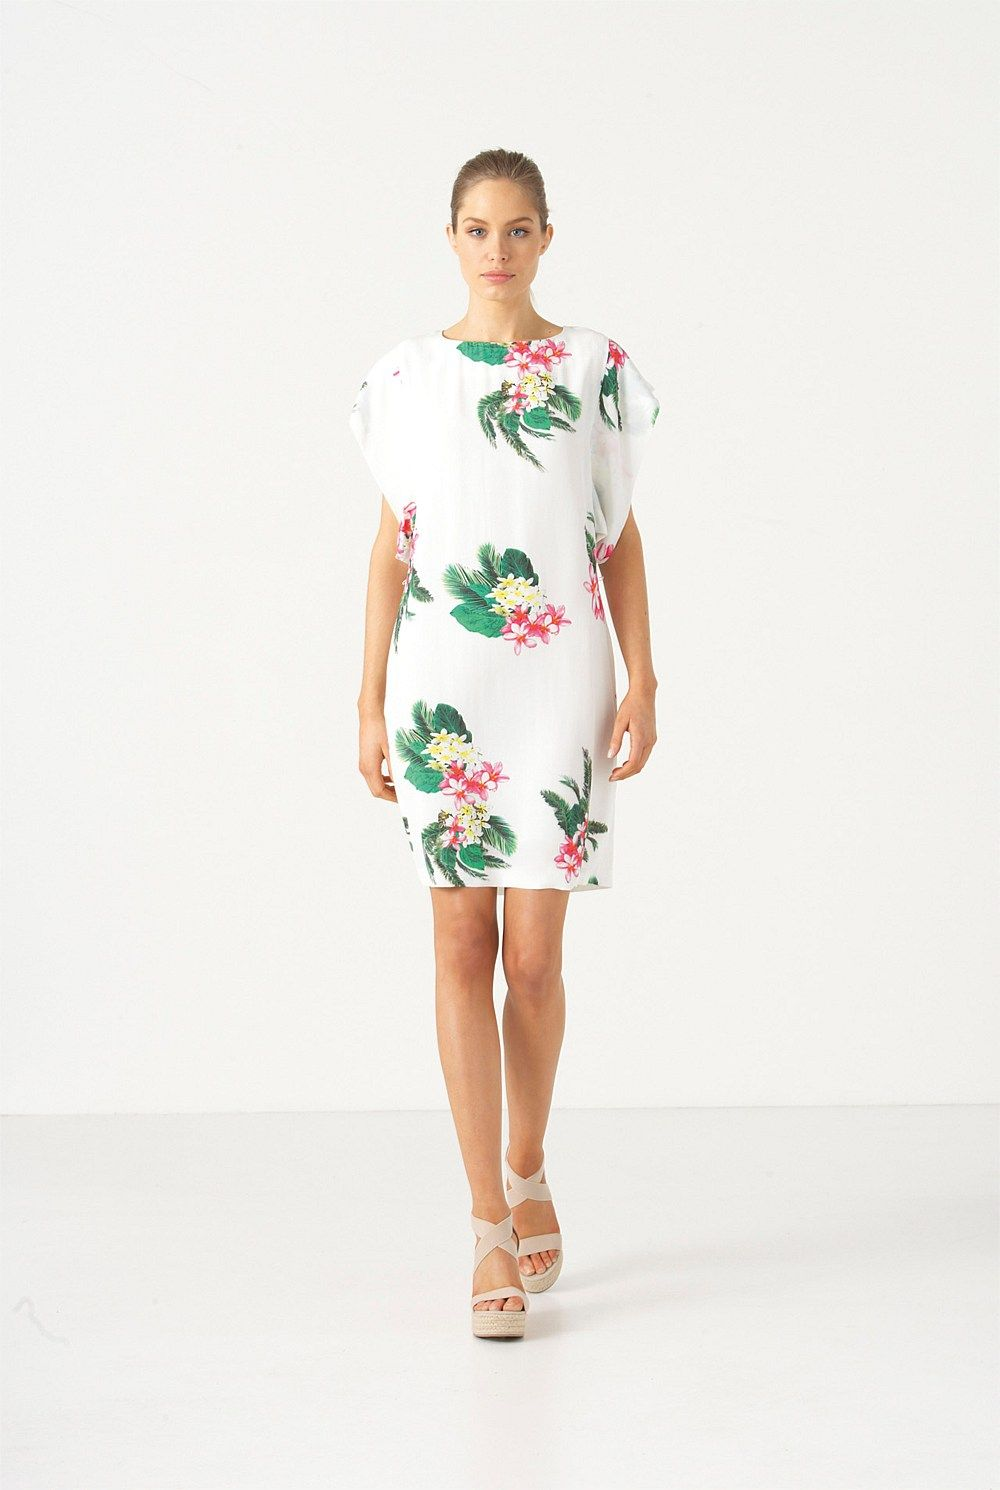 Hibiscus print dress surf style pinterest hibiscus and surf style